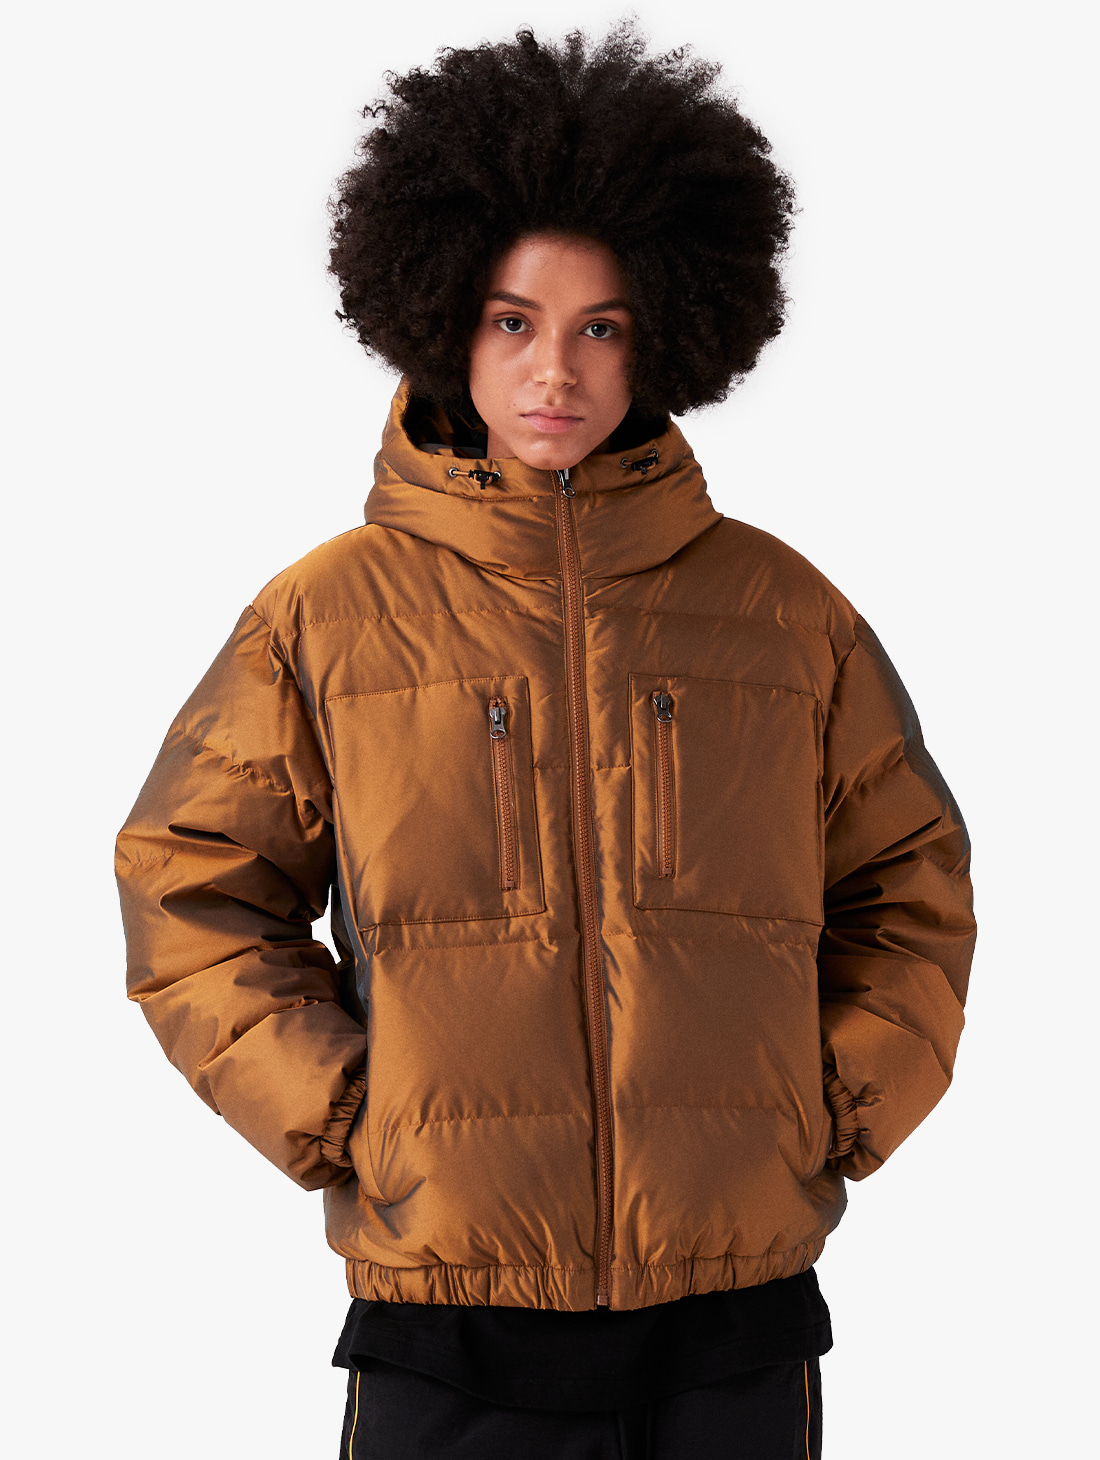 GOALSTUDIO [PRE-ORDER 10% OFF] WWFC TWO TONE DOWN JACKET